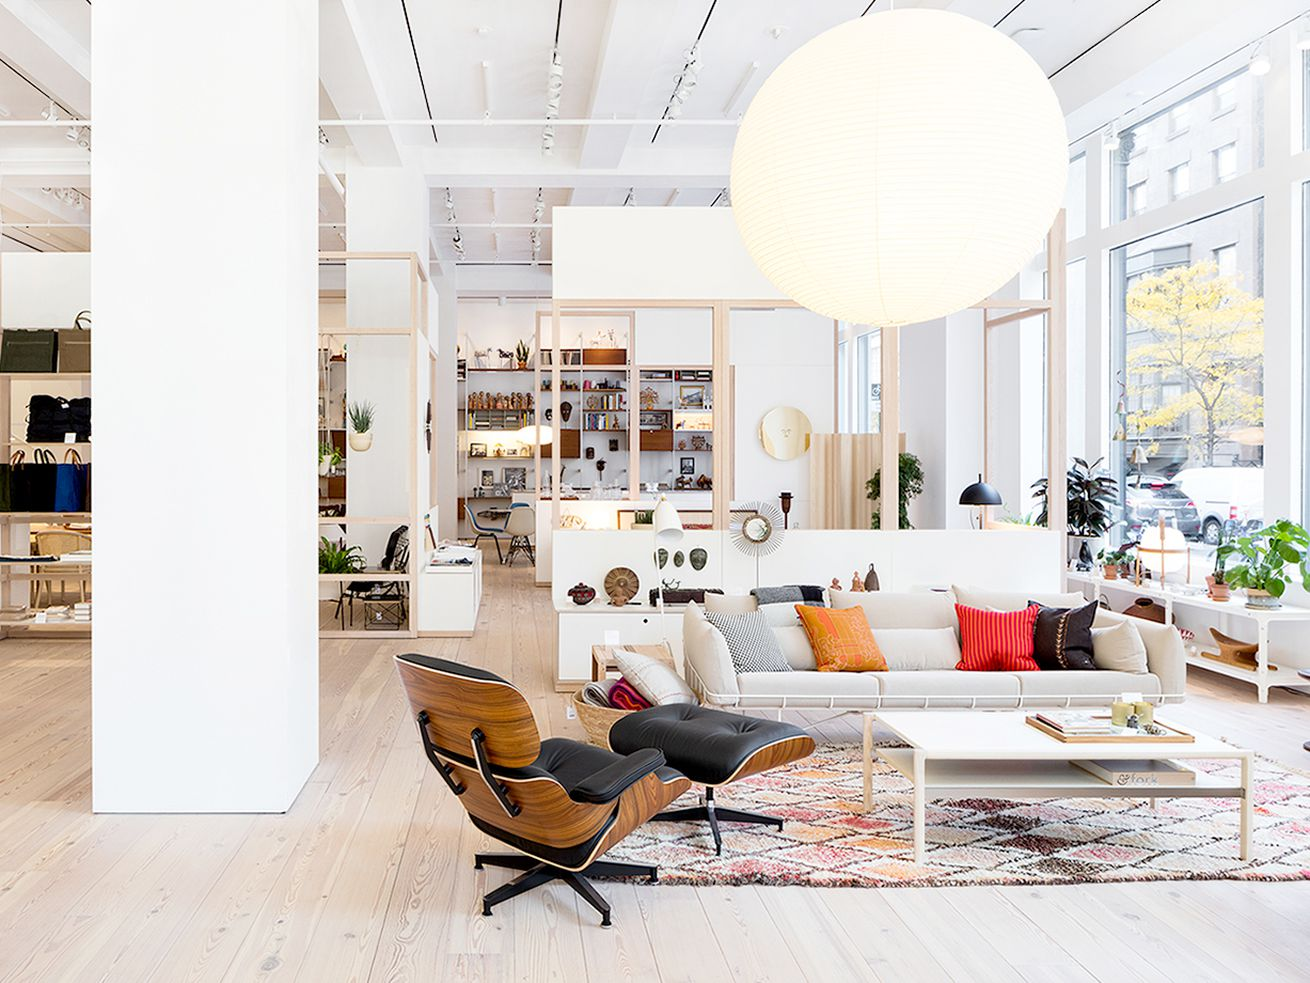 The Herman Miller flagship store in New York City.